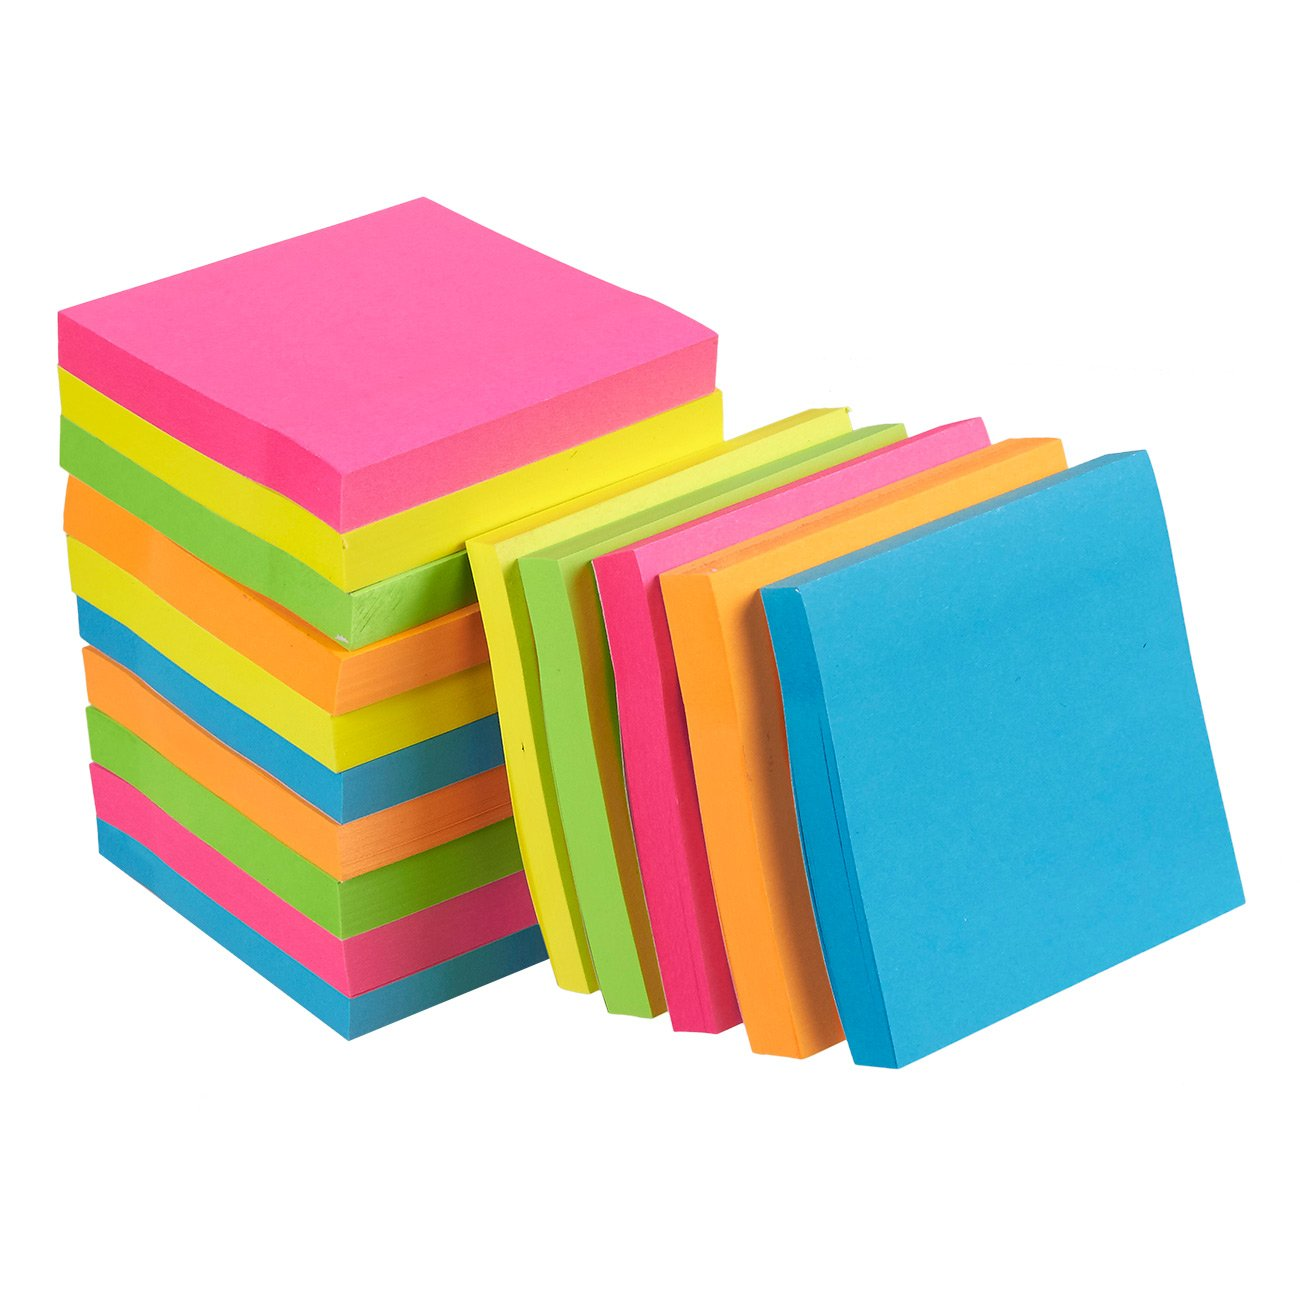 Sticky Notes - 15-Pads Self-Stick Note Pads, Memo, Post, Reminder for Students, Home, Desk, Office Supplies, 5 Colors, 100 Sheets Per Pad, 3 x 3 Inches